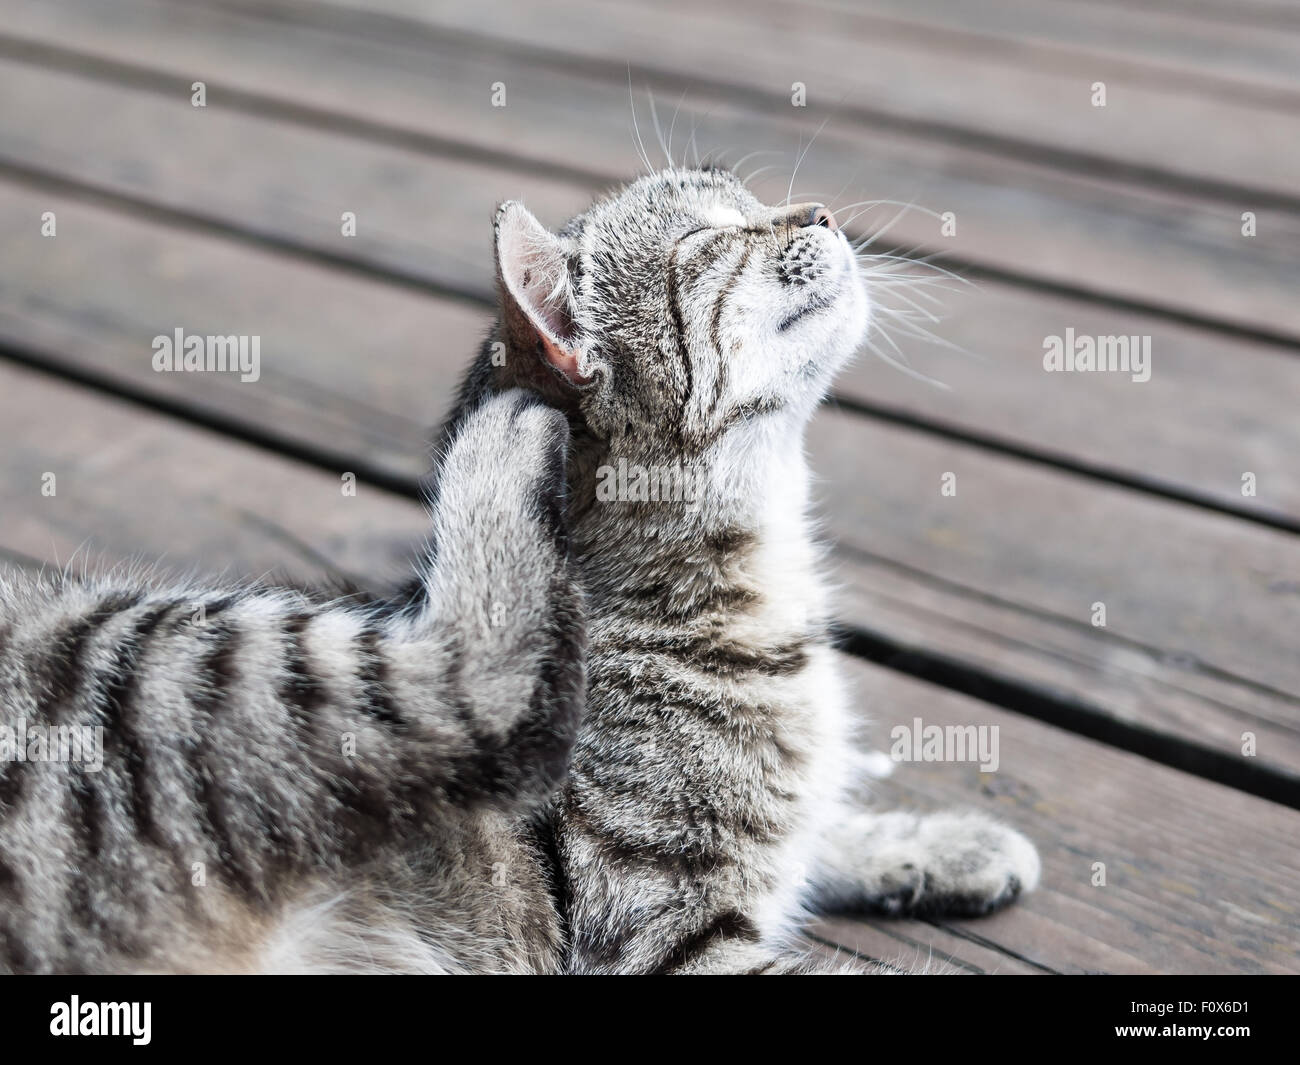 Cat enjoying scratching itself in soft colours - Stock Image